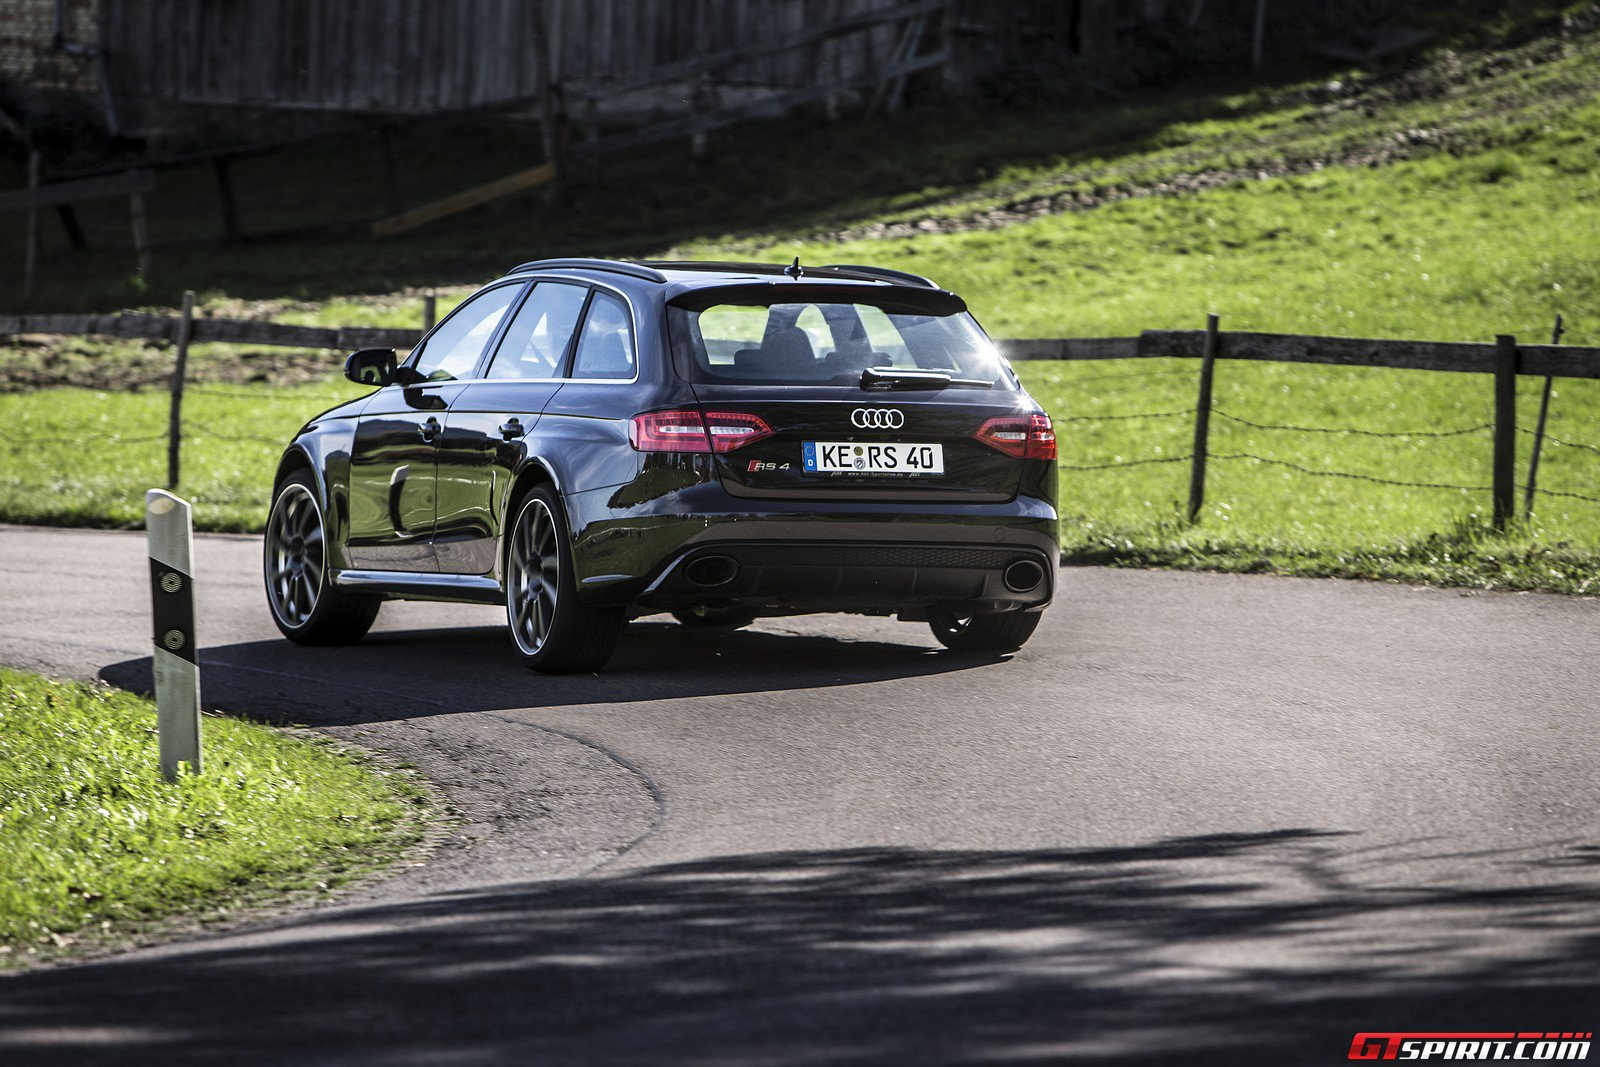 http://www.gtspirit.com/wp-content/gallery/abt-sportsline-rs4/abt-sportsline-rs4-004.jpg